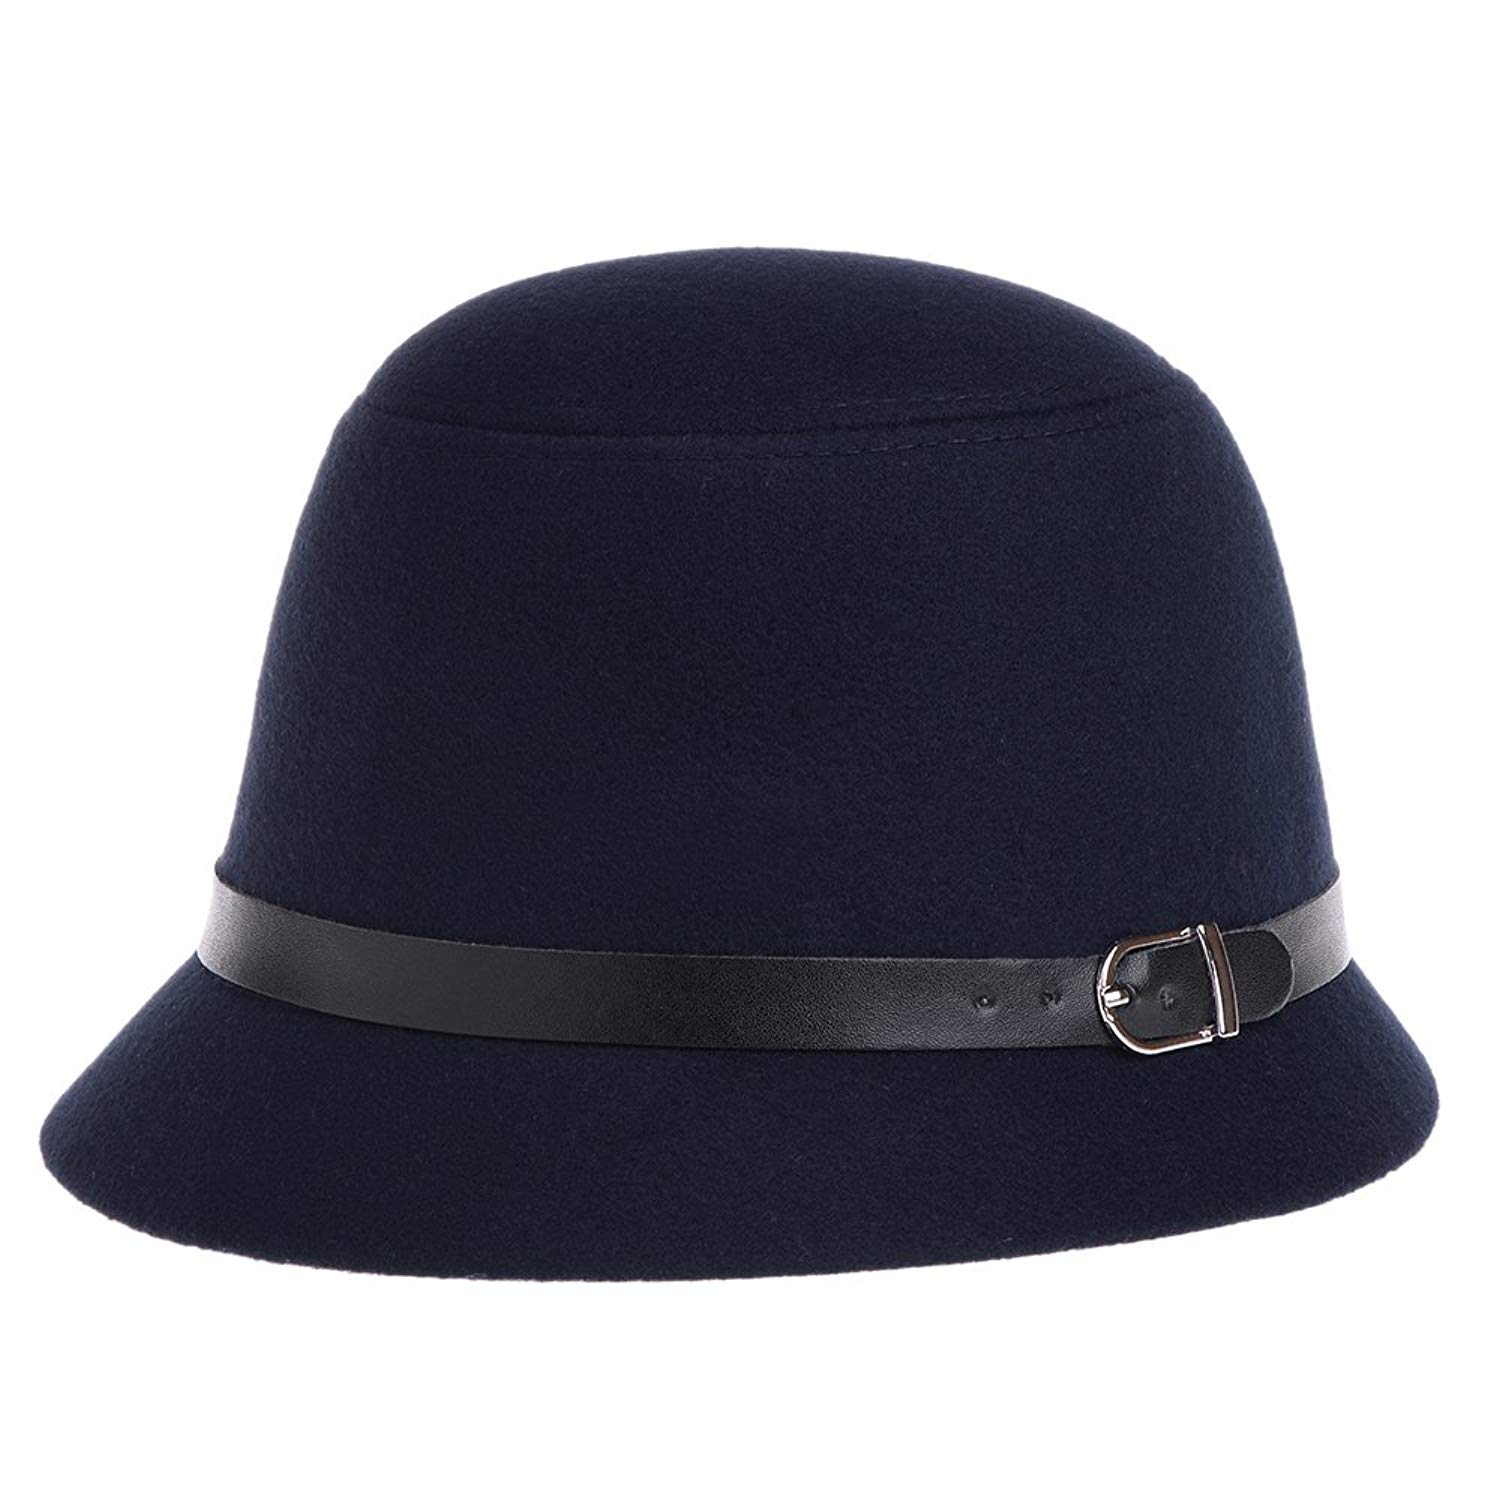 88d13876cbd Get Quotations · VBIGER Bowler Hat Fedora Derby Hats Vintage Cloche Hats  Bucket Hats For Women